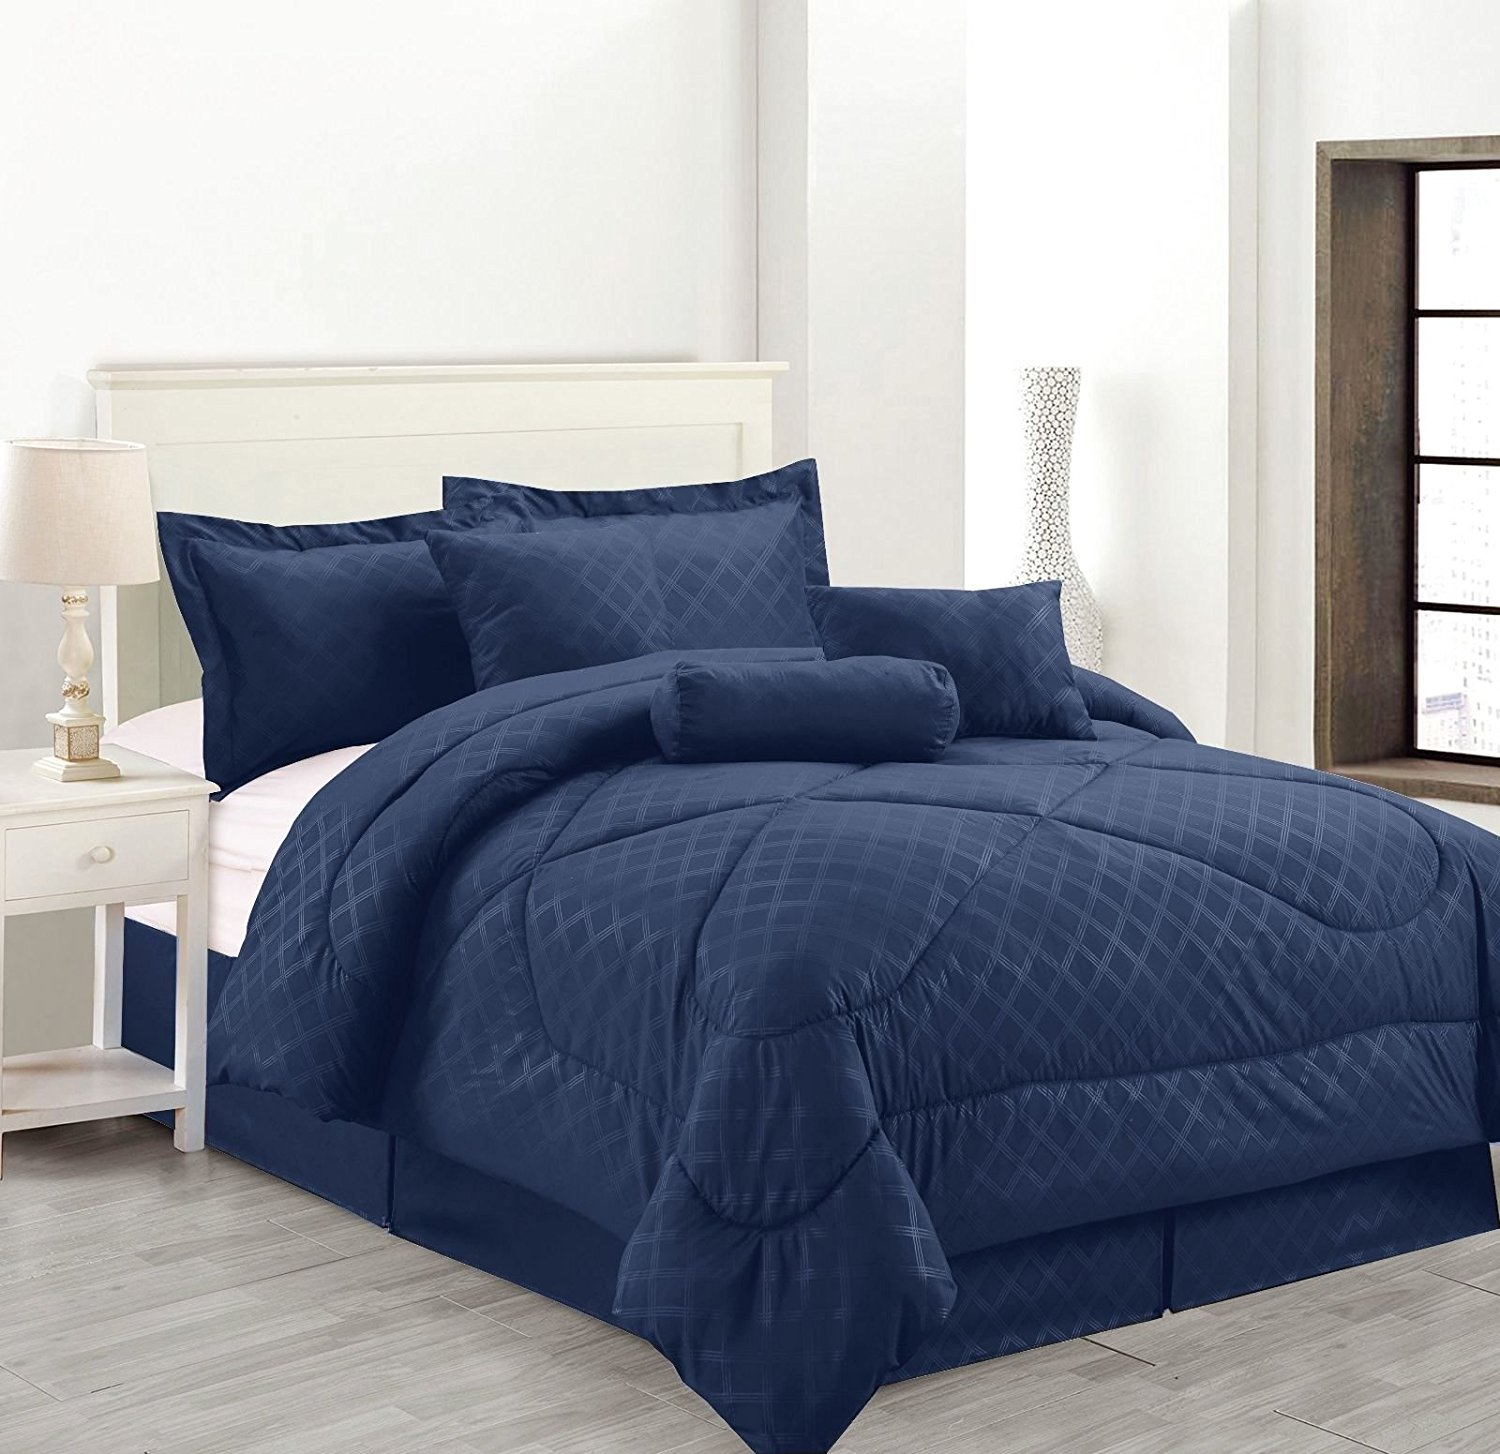 Navy Blue King Size Quilt Cheaper Than Retail Price Buy Clothing Accessories And Lifestyle Products For Women Men